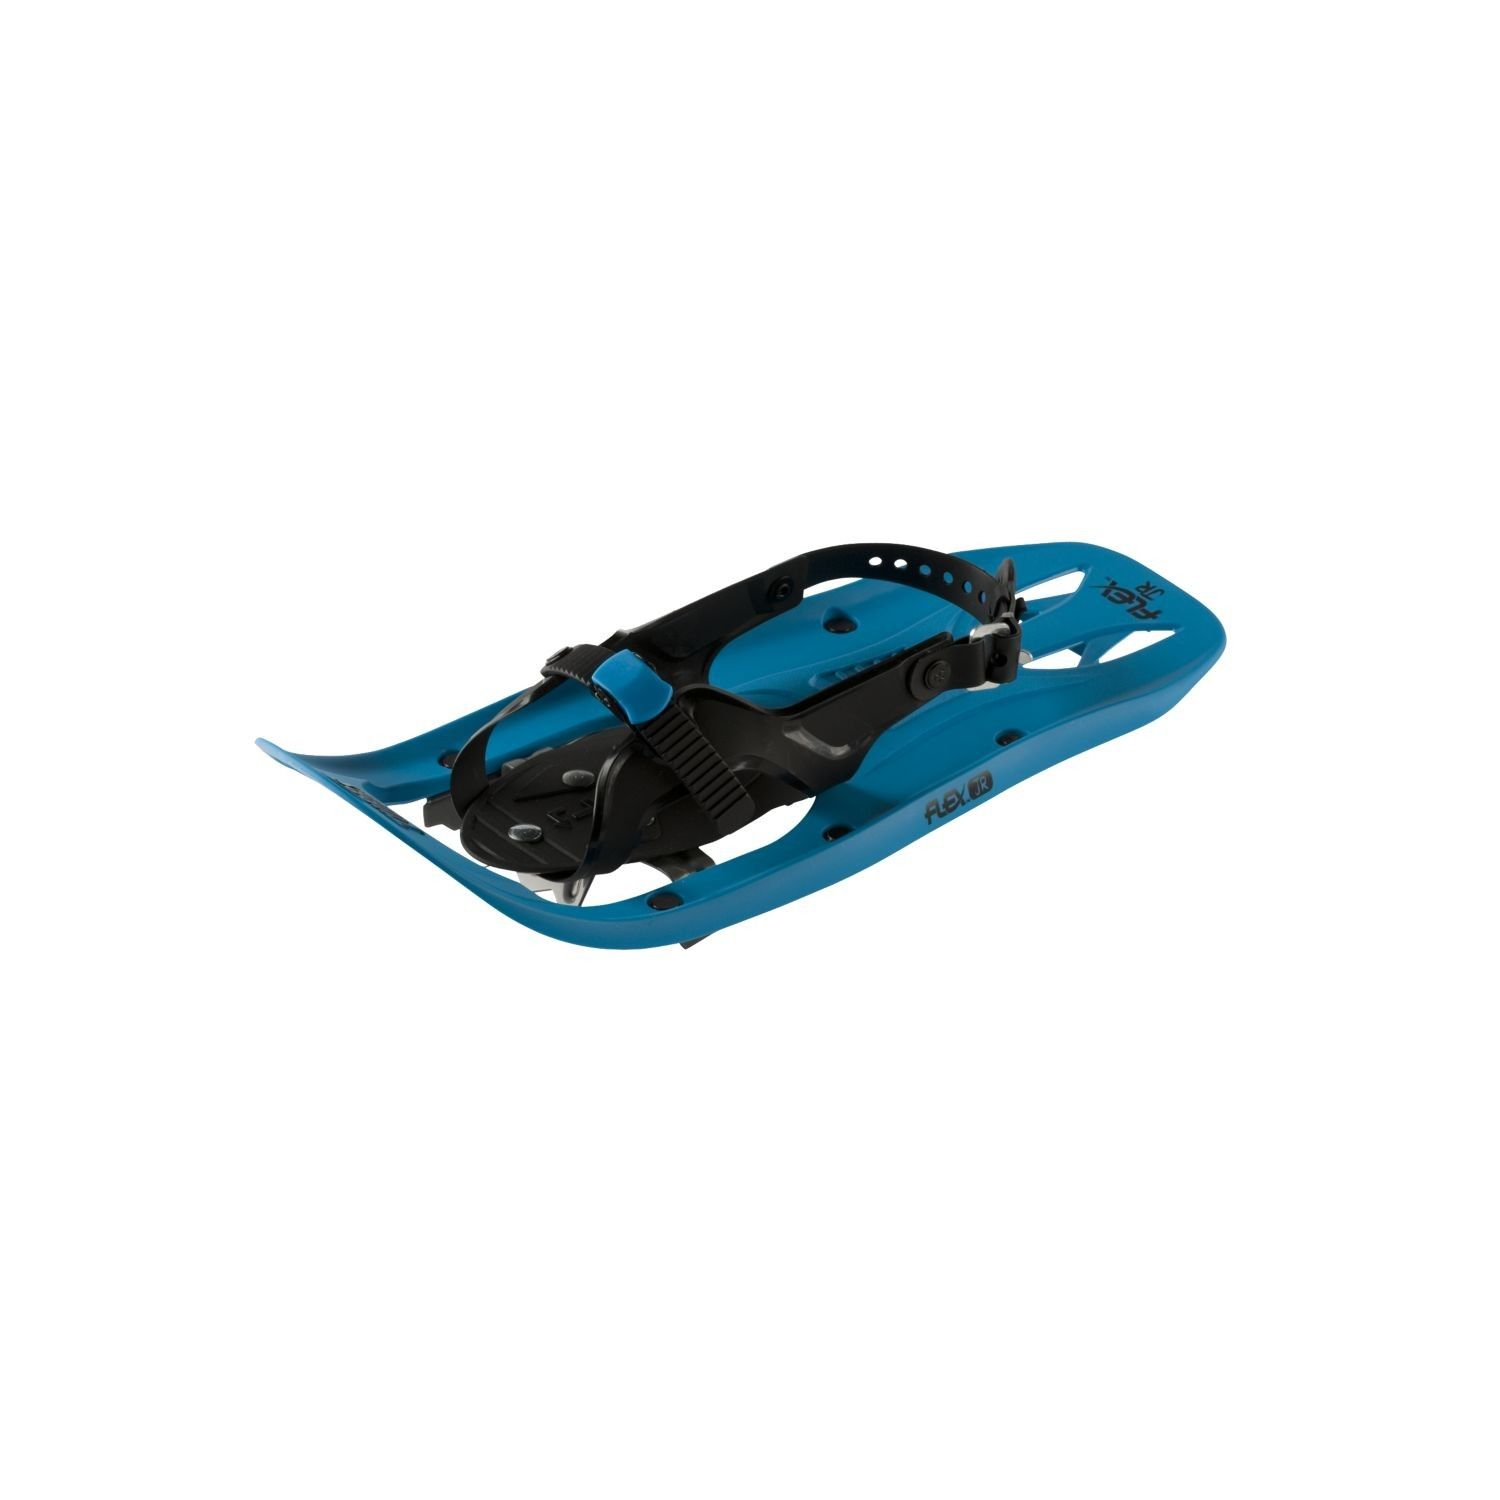 Tubbs Boys Flex Junior Snowshoe Blau, Male One Size -Farbe Blue, One Size